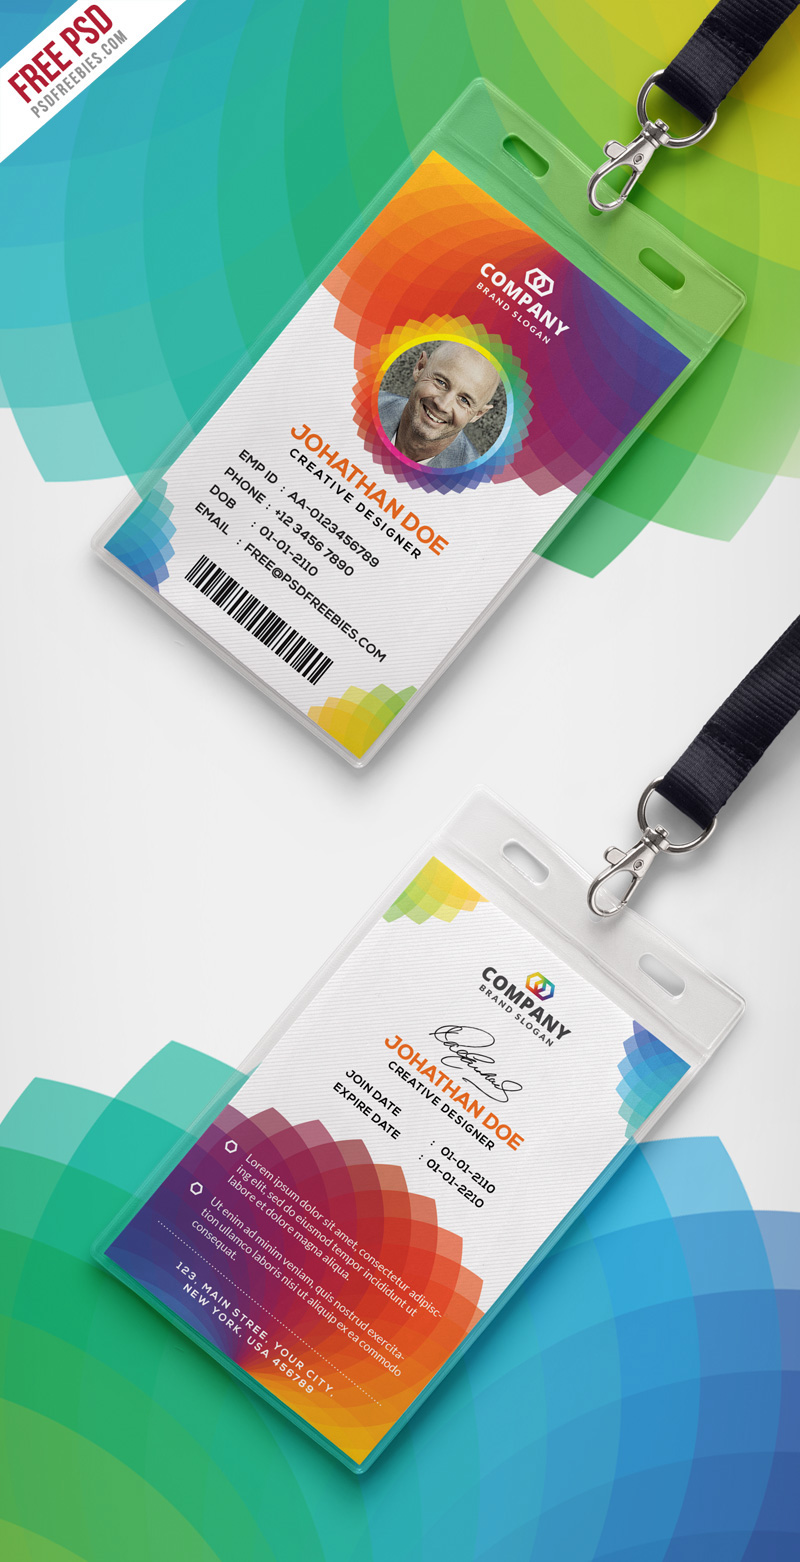 Free psd corporate branding identity card psd on behance download free corporate branding identity card free psd this free corporate office id card psd template a designed for any types of companies and offices colourmoves